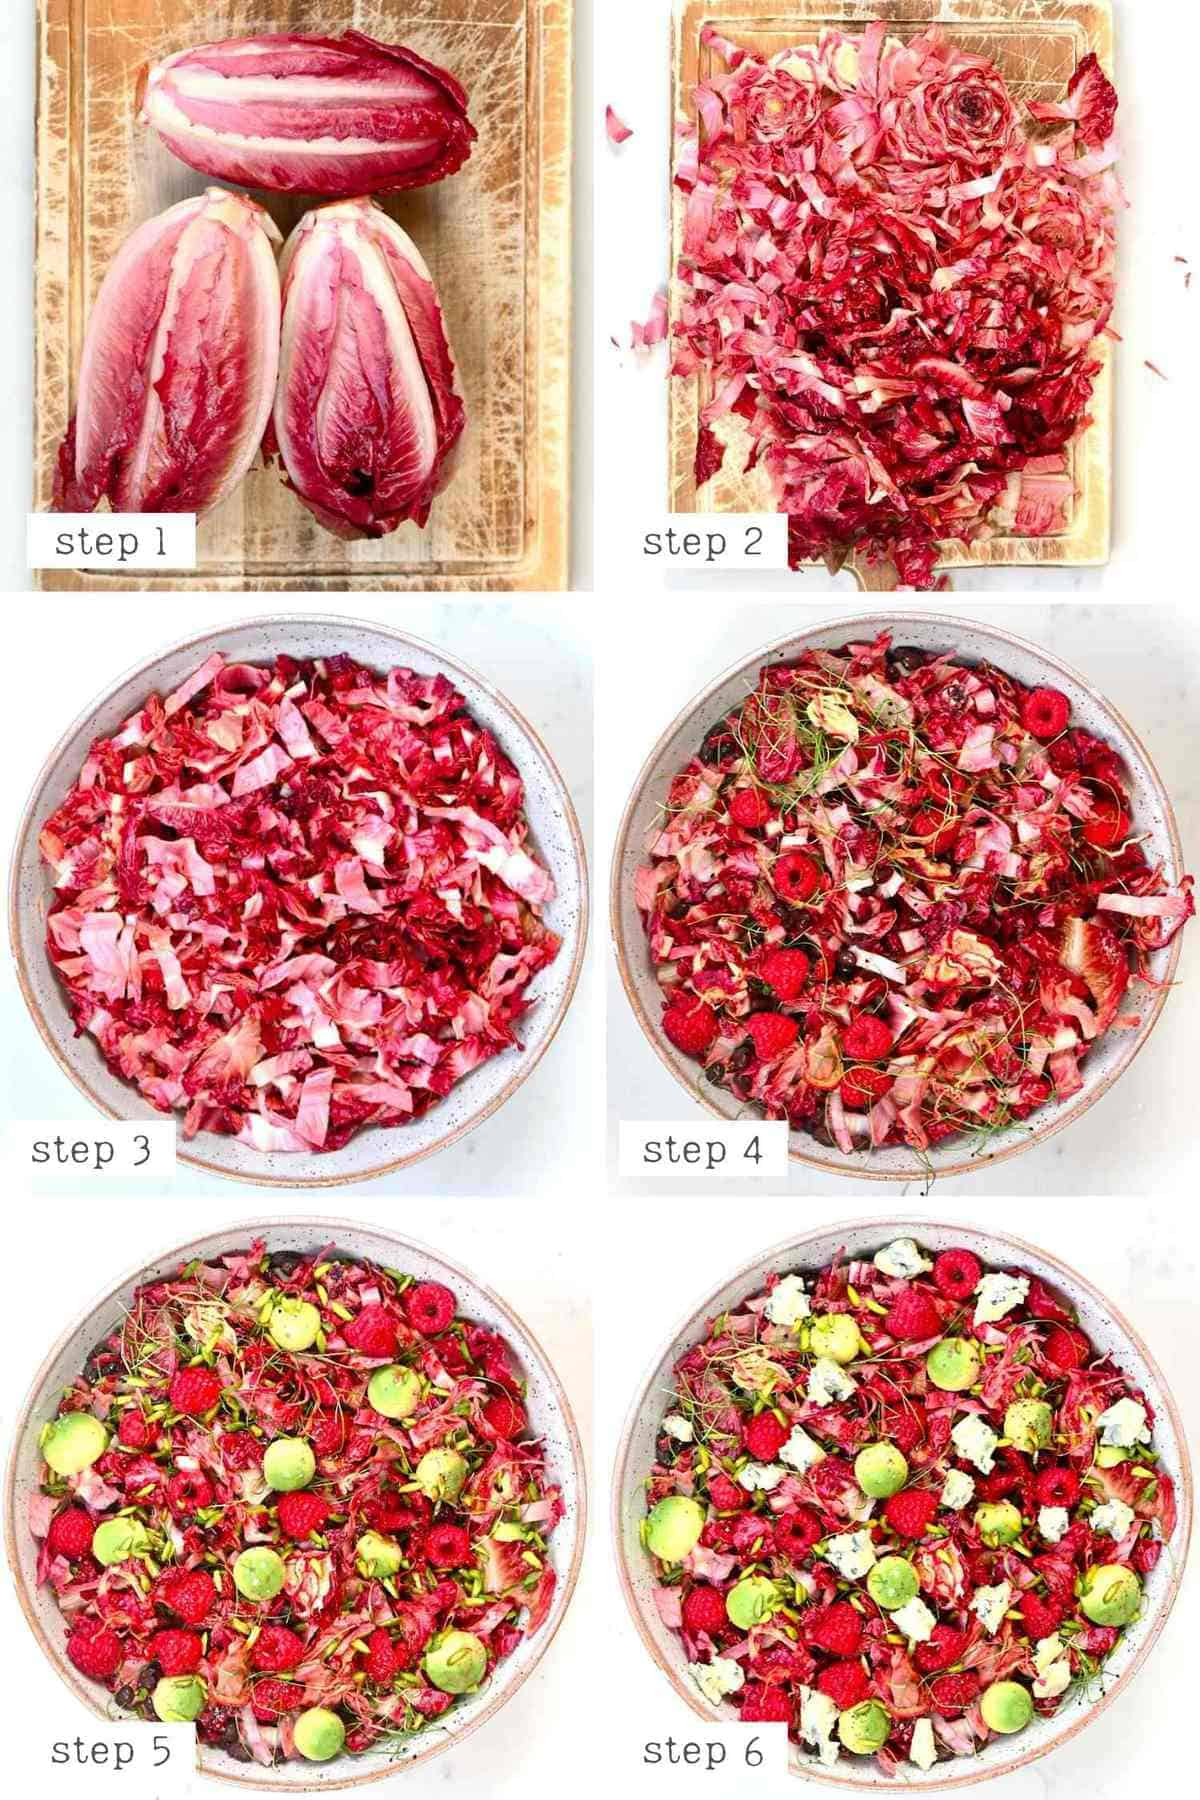 Steps for making Raspberry Salad